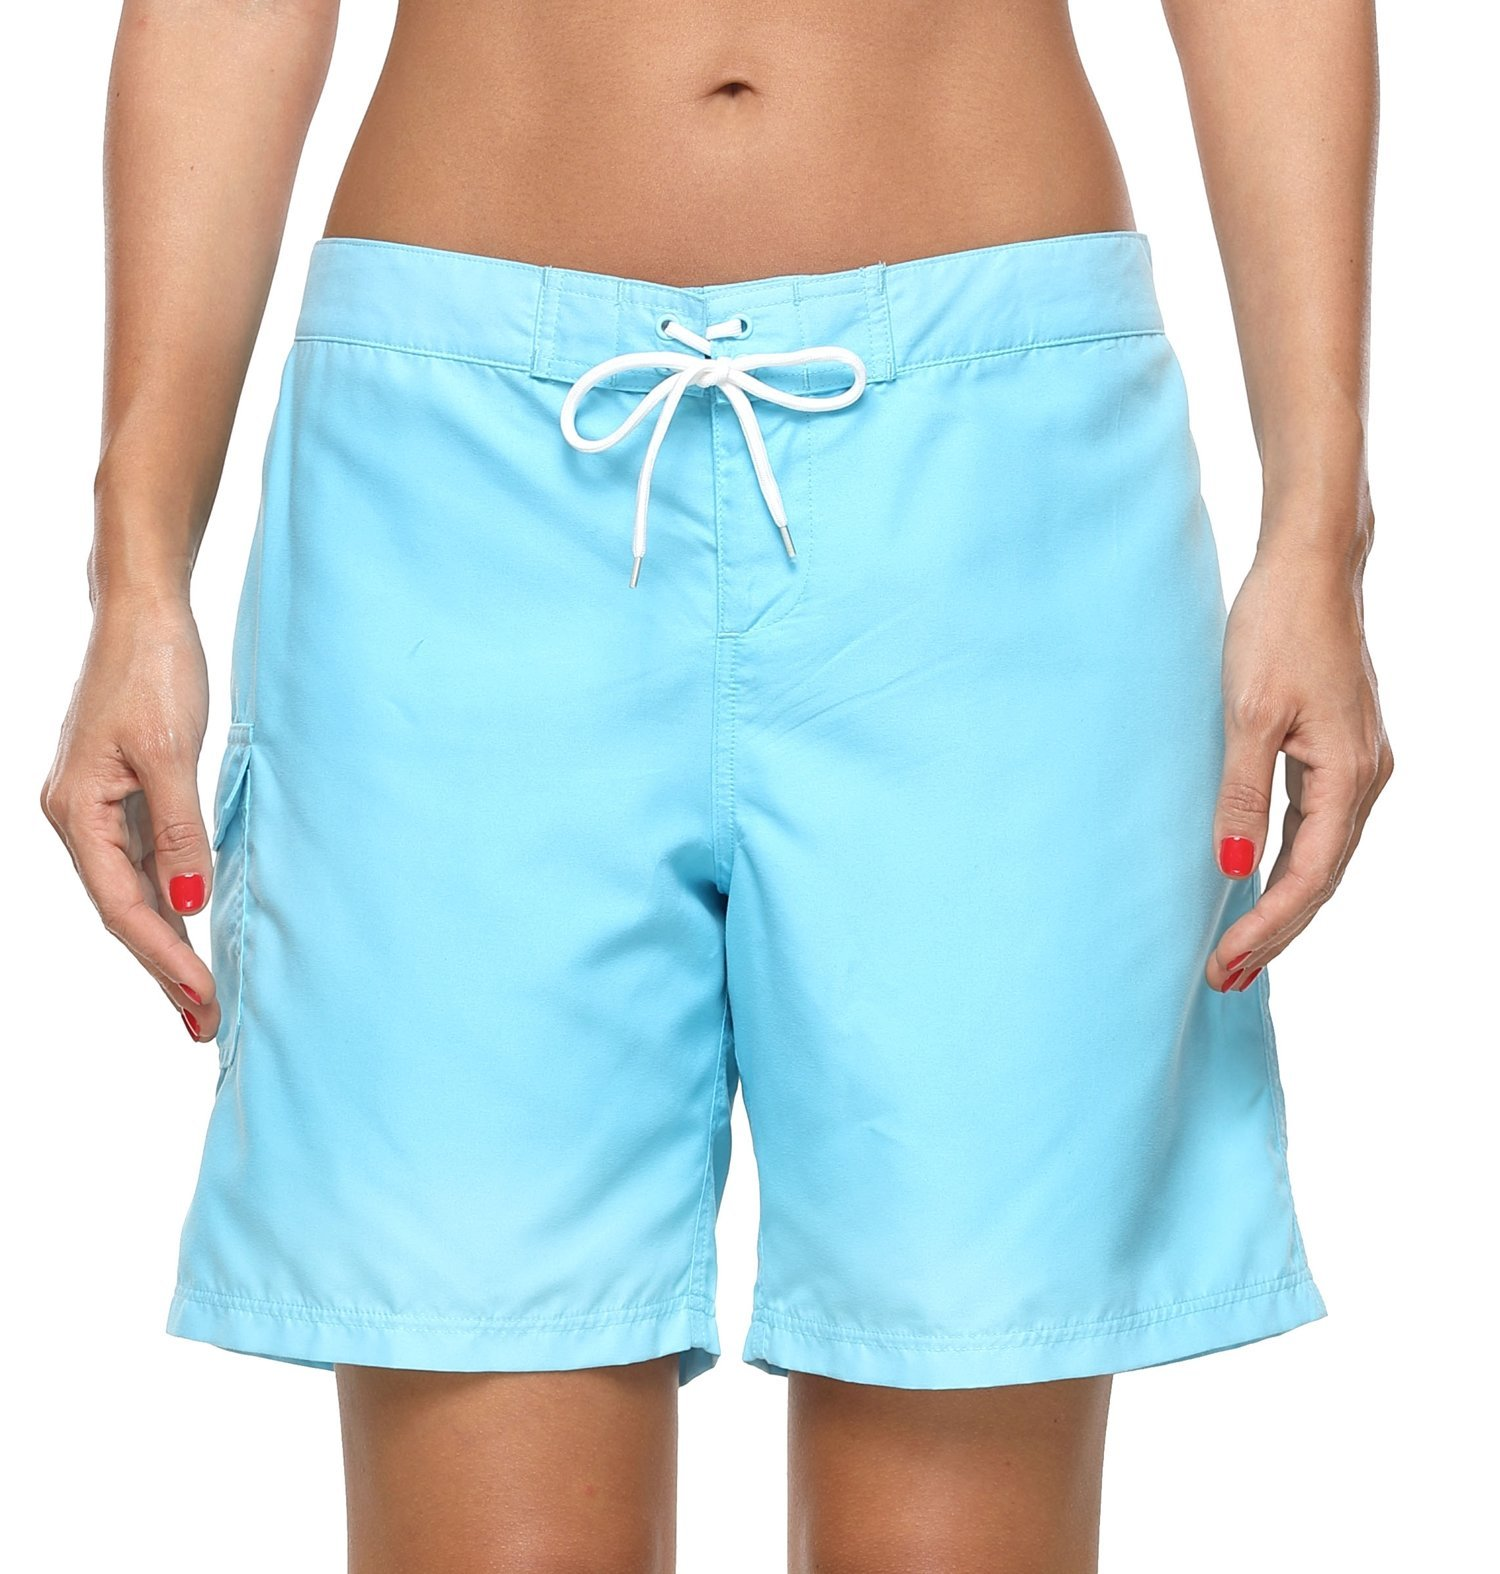 ATTRACO Women's Long Board Short Side Pocket Drawstring Swimwear Shorts Blue Large